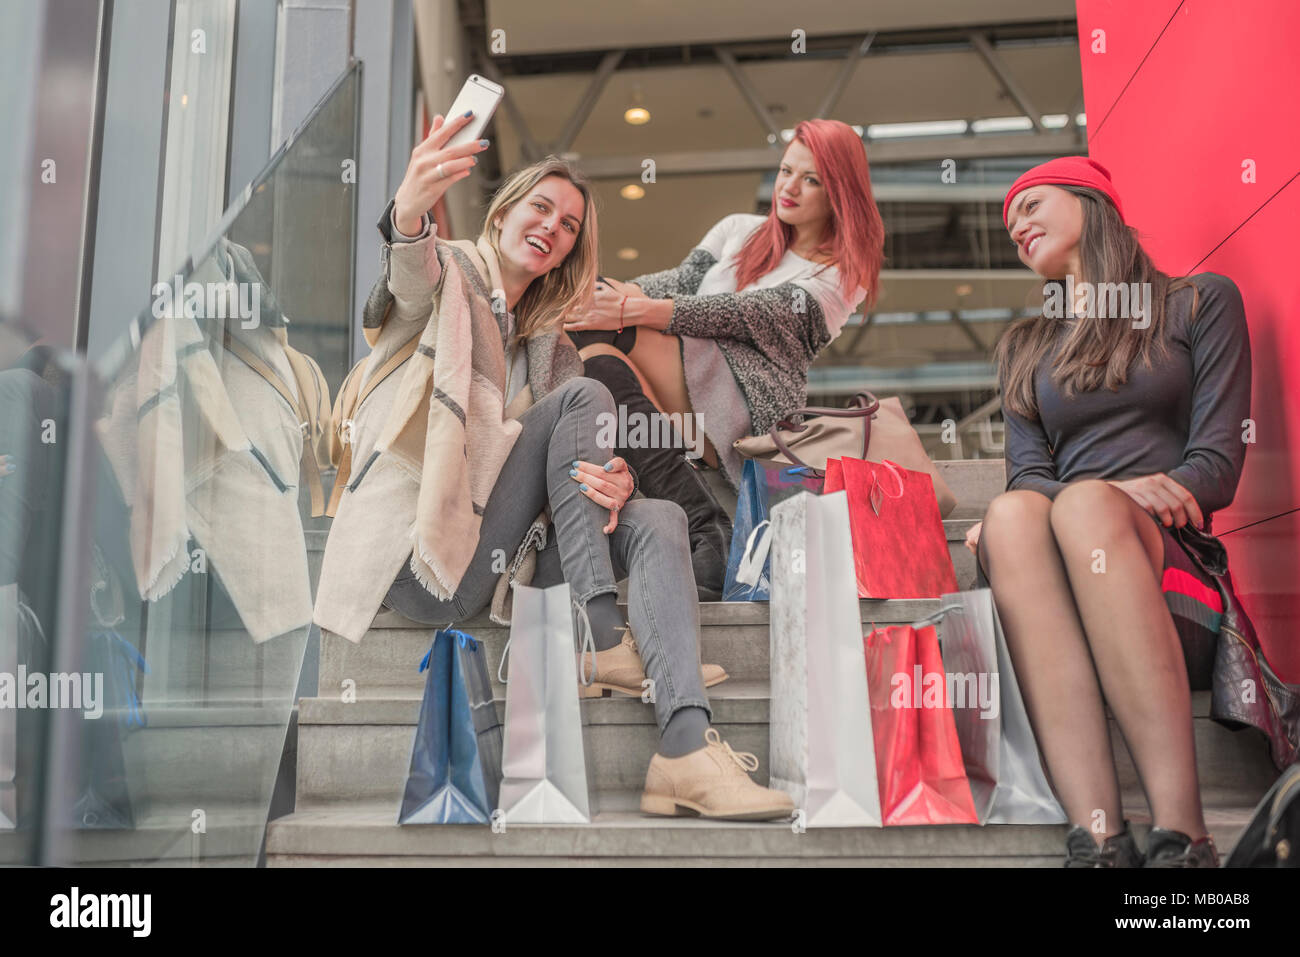 Three young and pretty girls are holding the shopping bags and going forward to the mall. Happy shopping with smiles. Good mood while shopping. - Stock Image